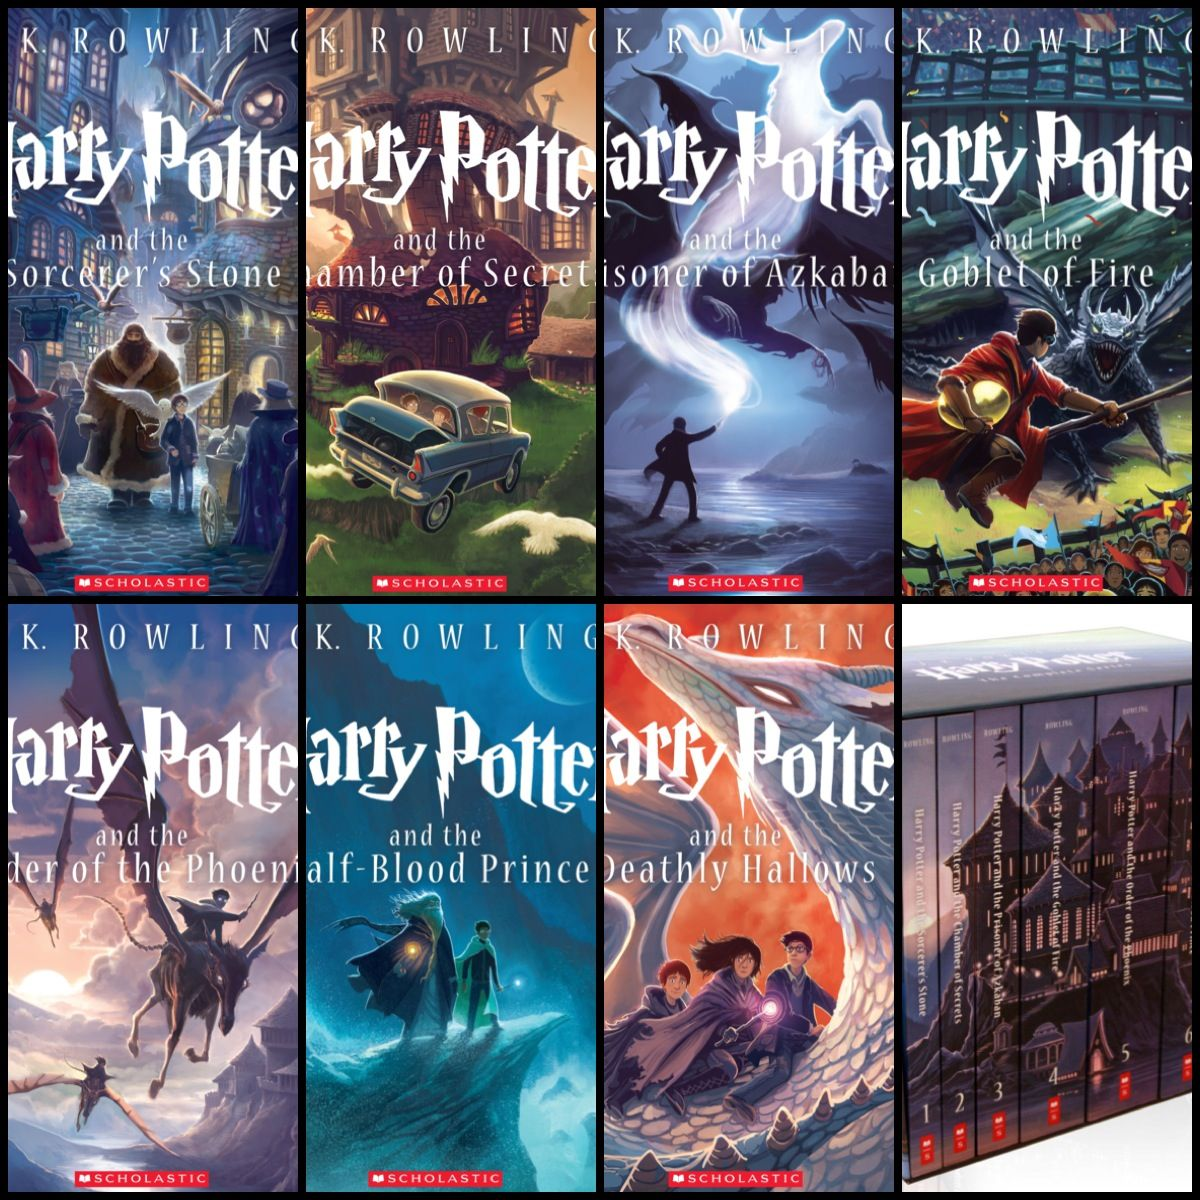 New Harry Potter Book Covers And See That Hogwarts Castle Lovely Harry Potter Book Covers Harry Potter Anniversary Harry Potter Books